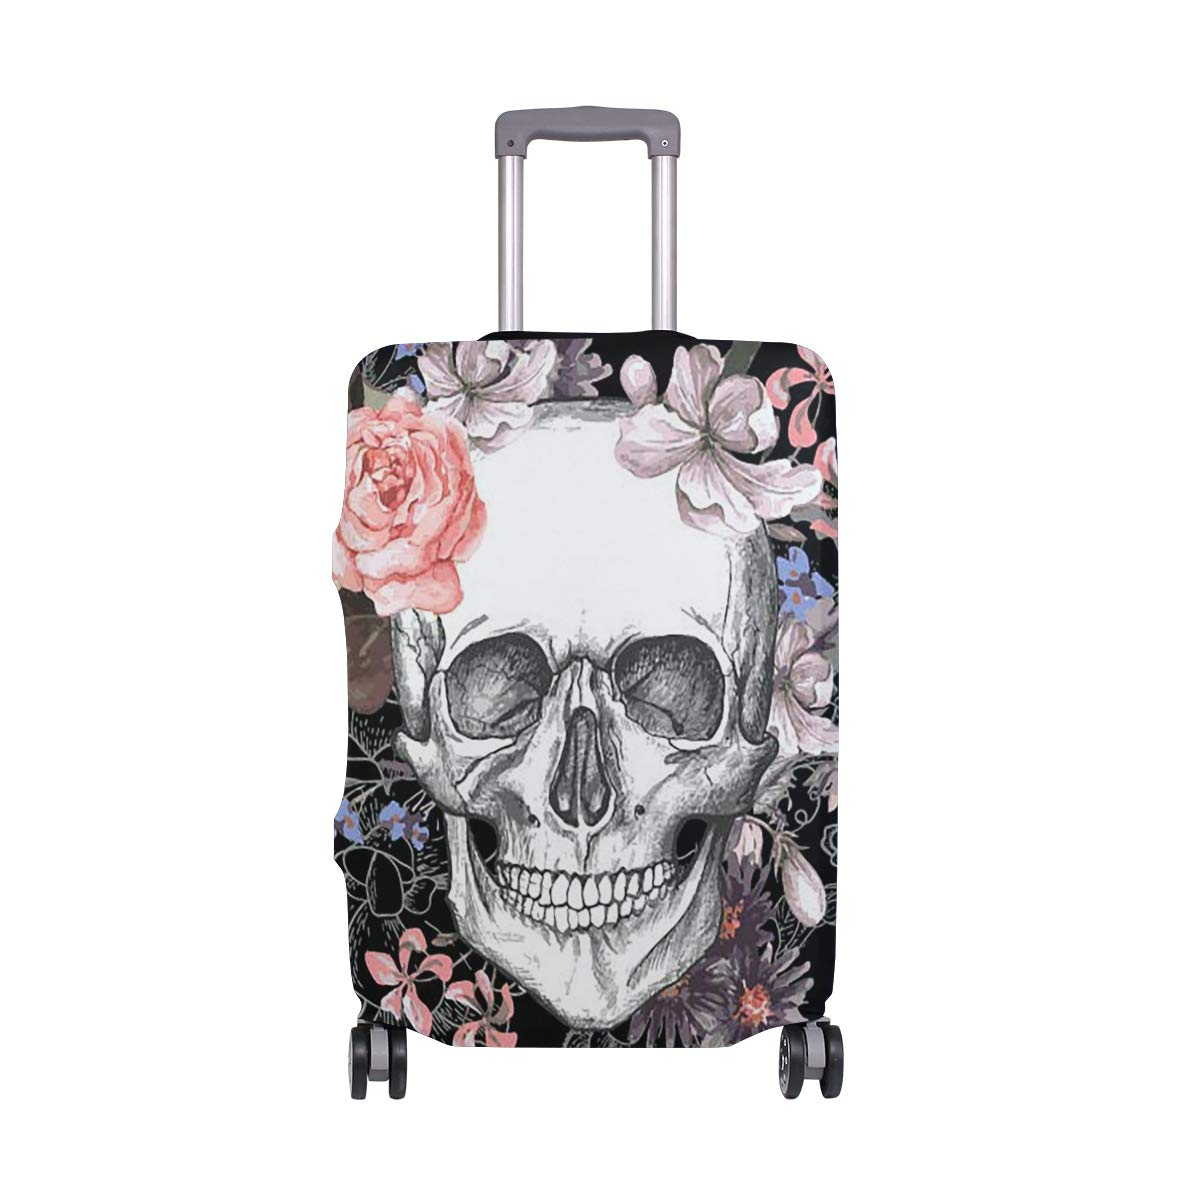 Travel Luggage Cover Spandex Suitcase Cove Protector Suitcase Baggage Covers Fits 18-32 Inch Luggage Case Cover